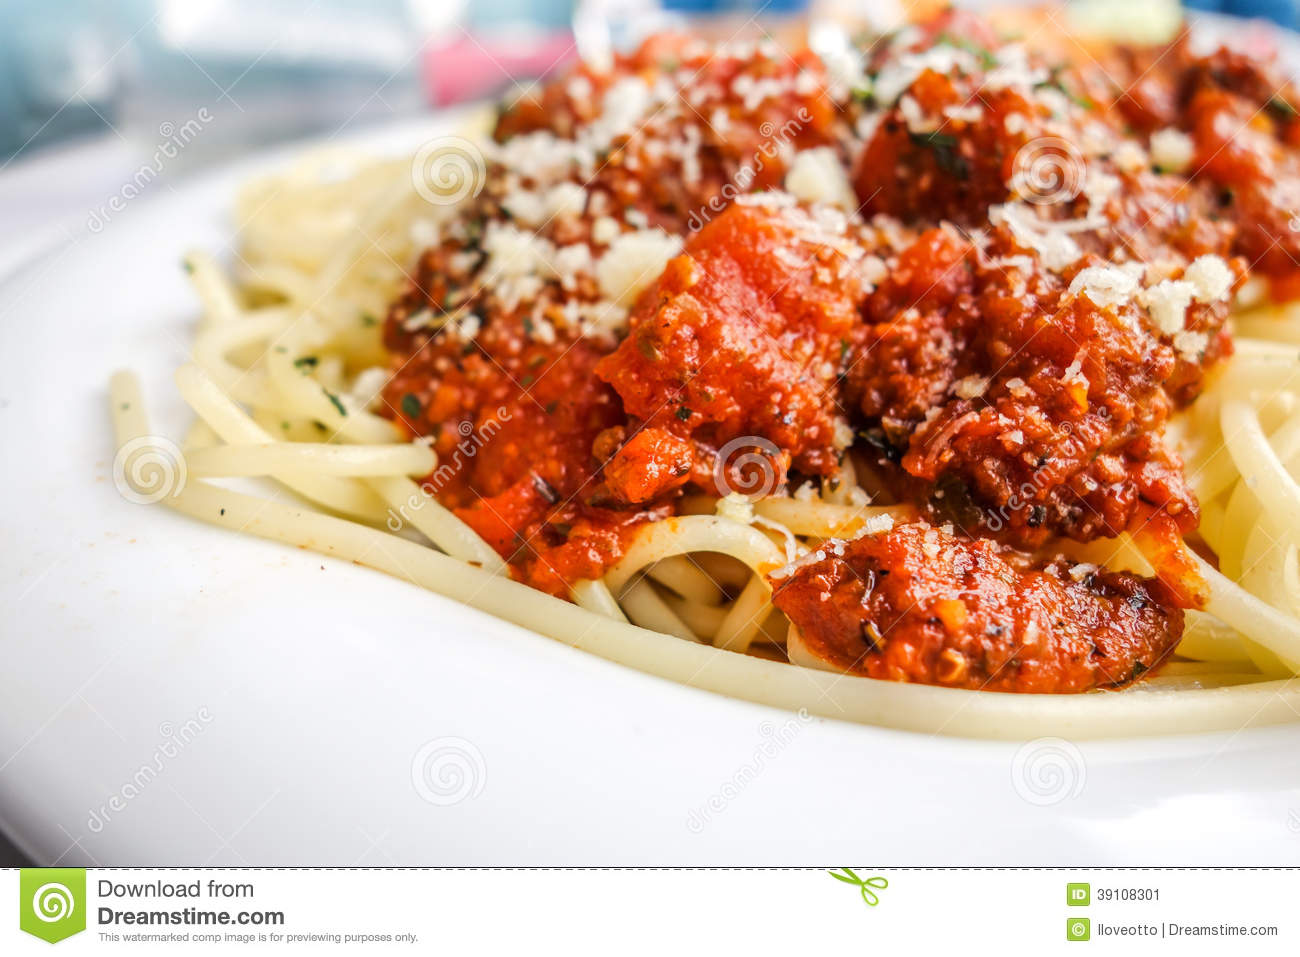 Tasty Pasta-Italian Meat Sauce Pasta Stock Photo - Image: 39108301